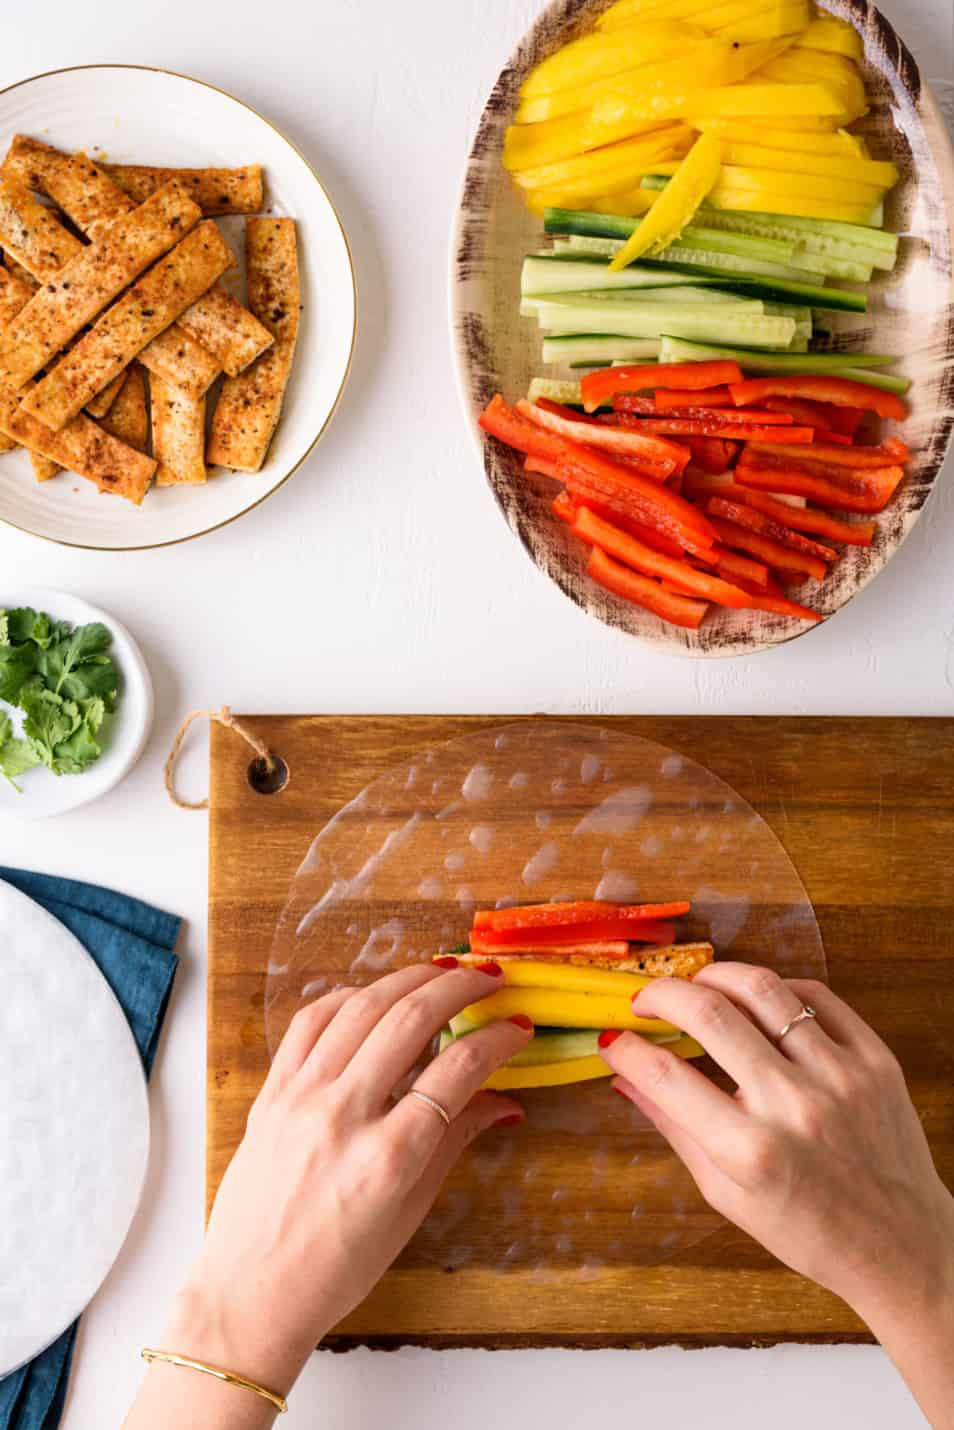 Woman's hands rolling a Vietnamese summer roll on a wooden board, alongside sliced vegetables and seared tofu